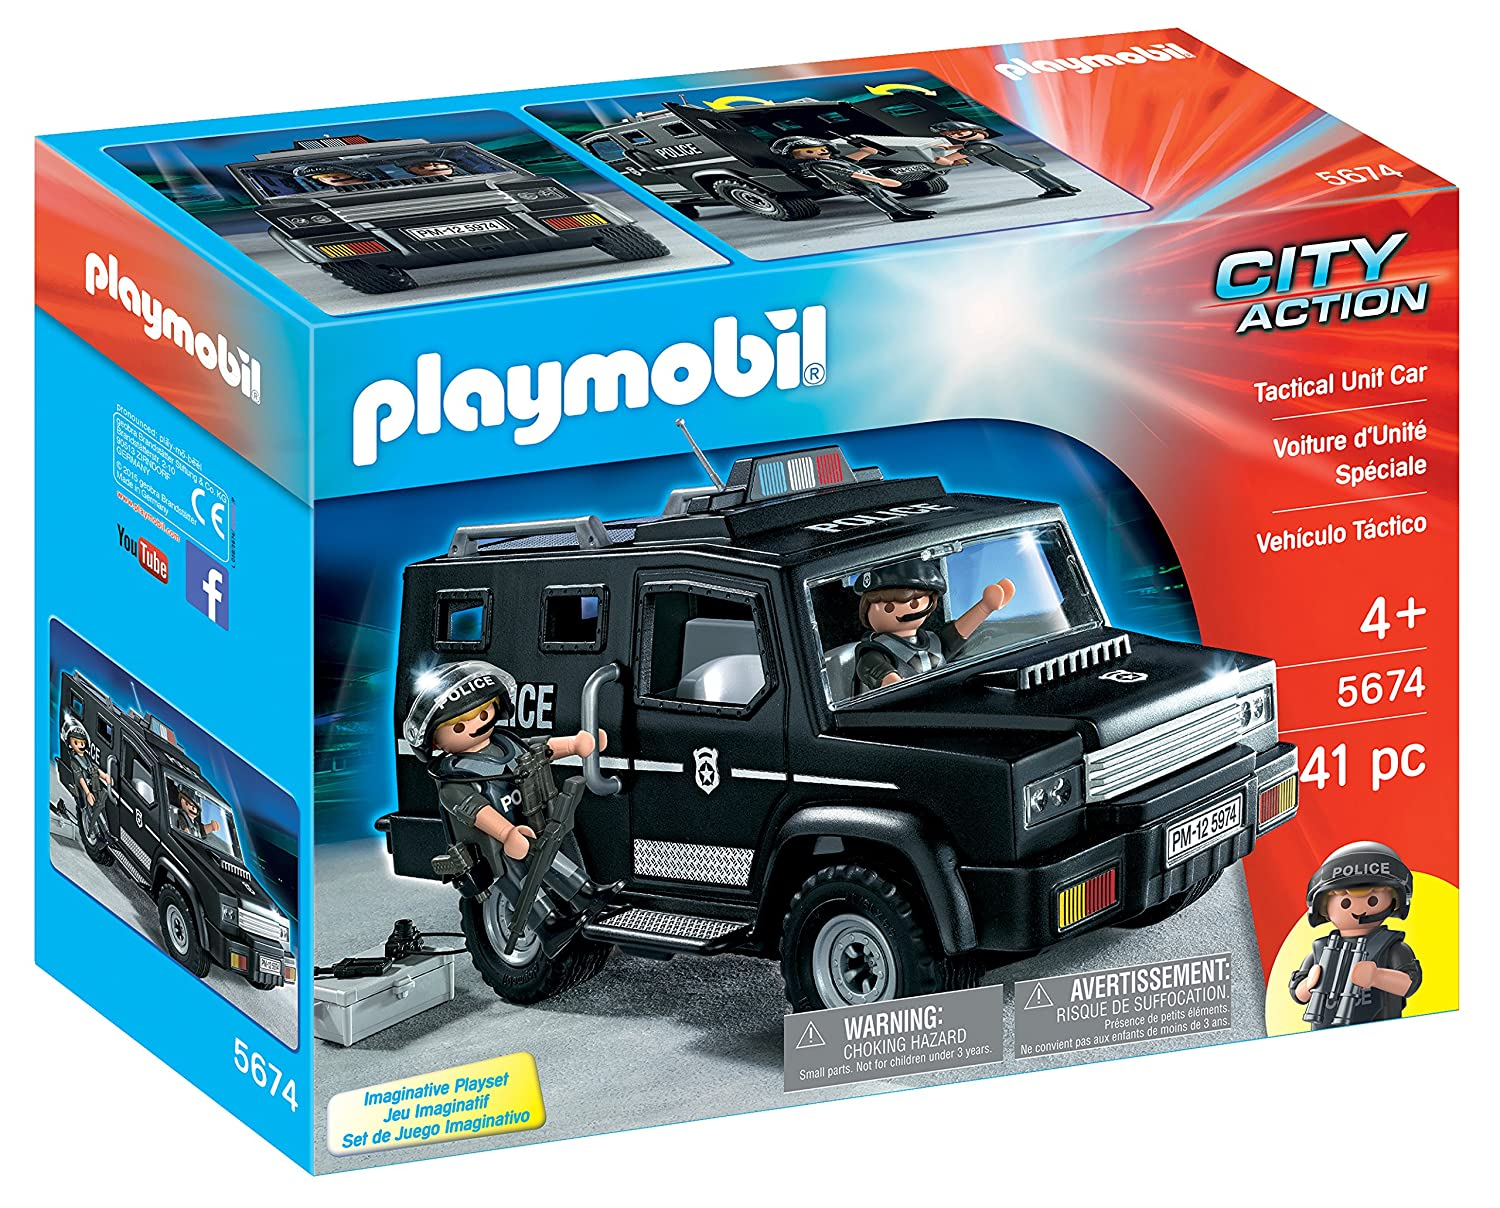 PLAYMOBIL® Tactical Unit Car Playset Playmobil - Cranbury 5674